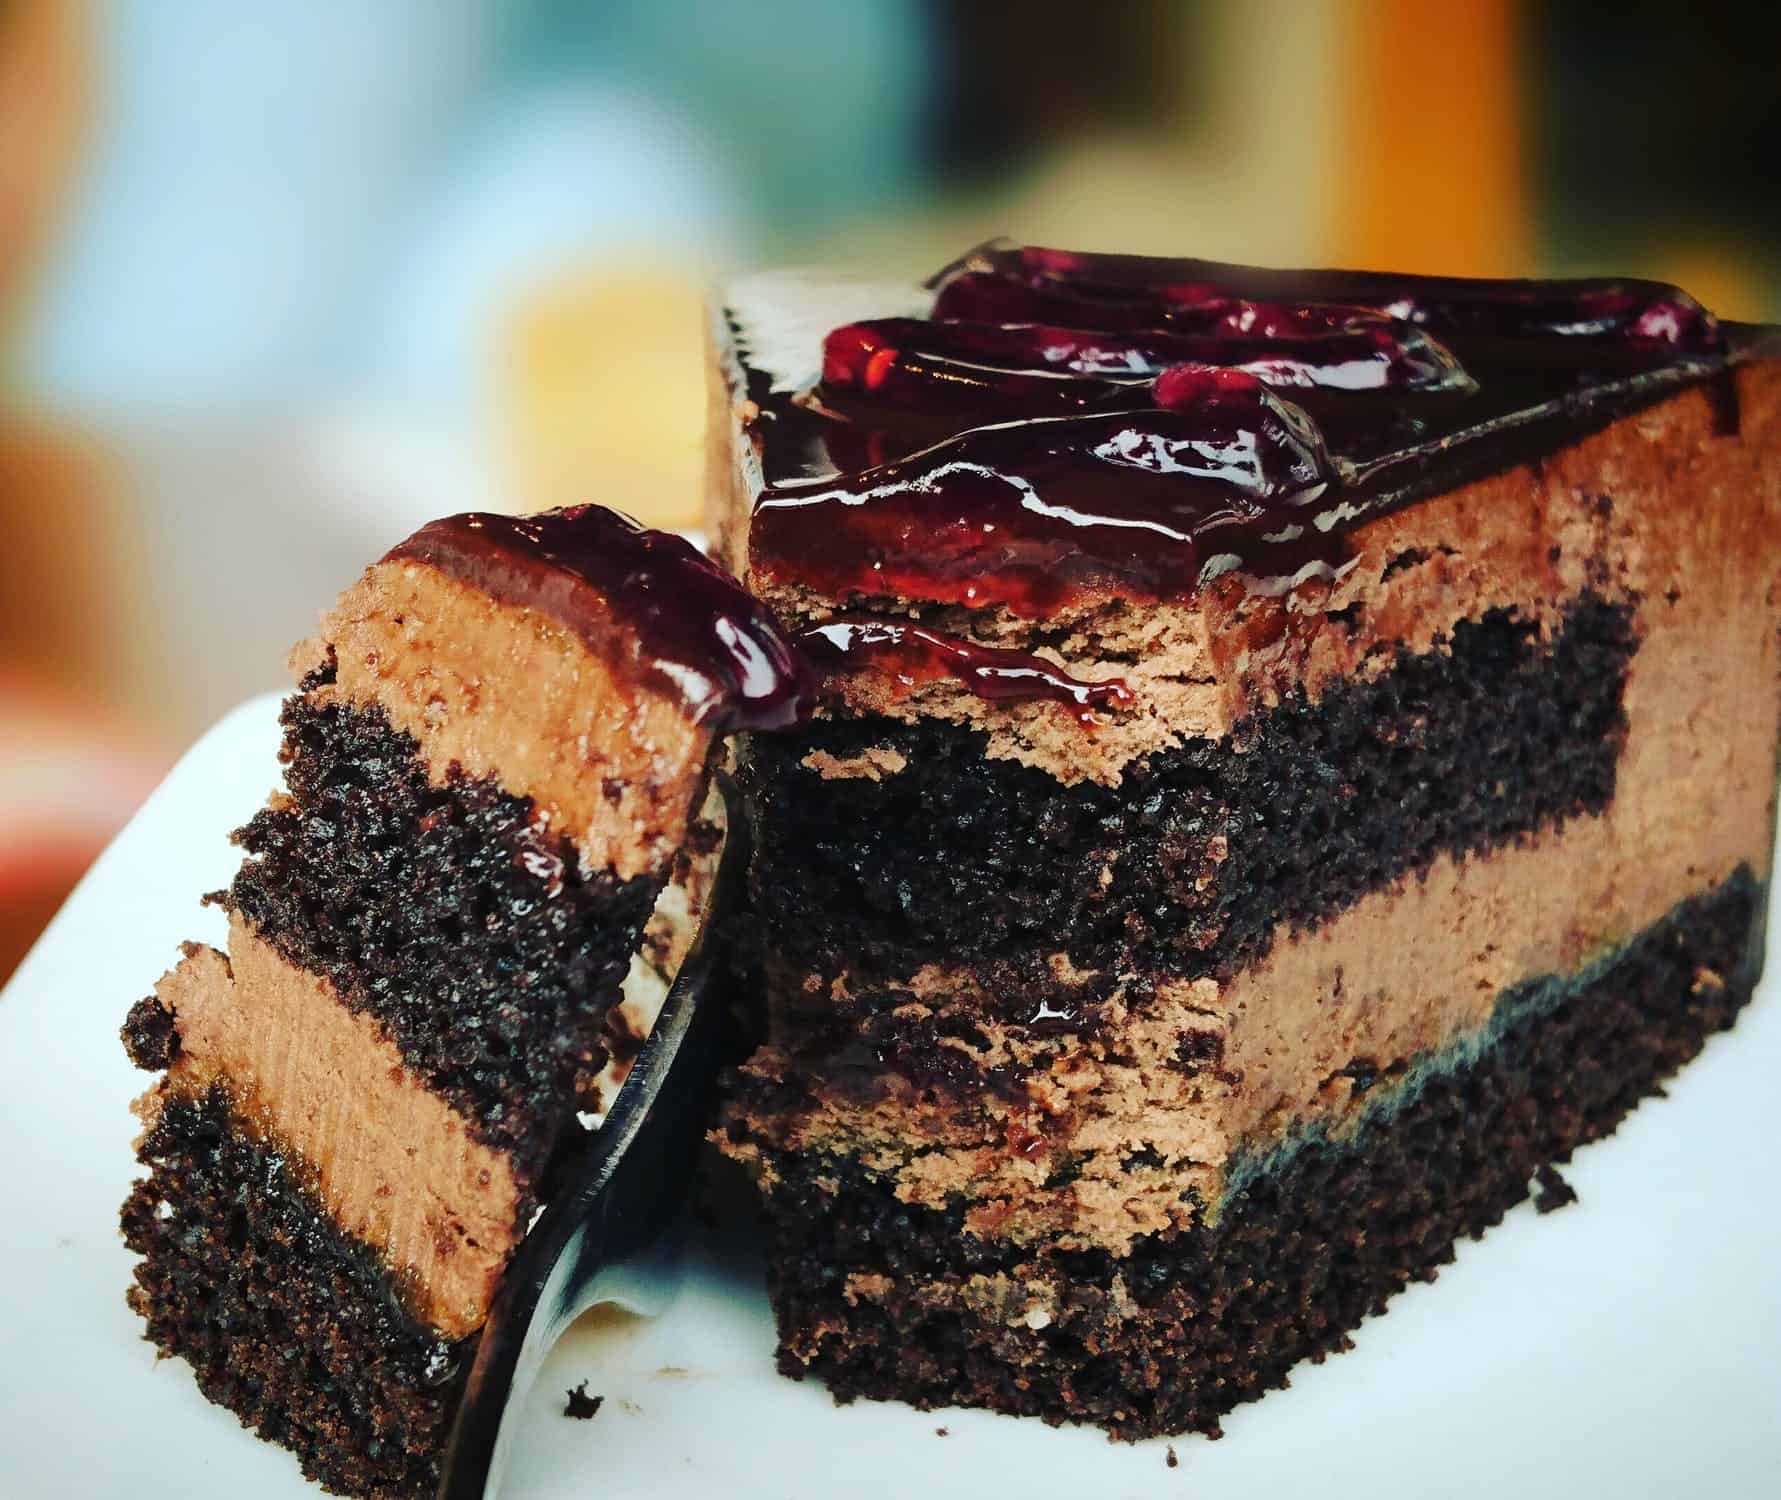 3 Of Our Favorite Spice Cake Recipes: Delicious Cake Options For Occasions